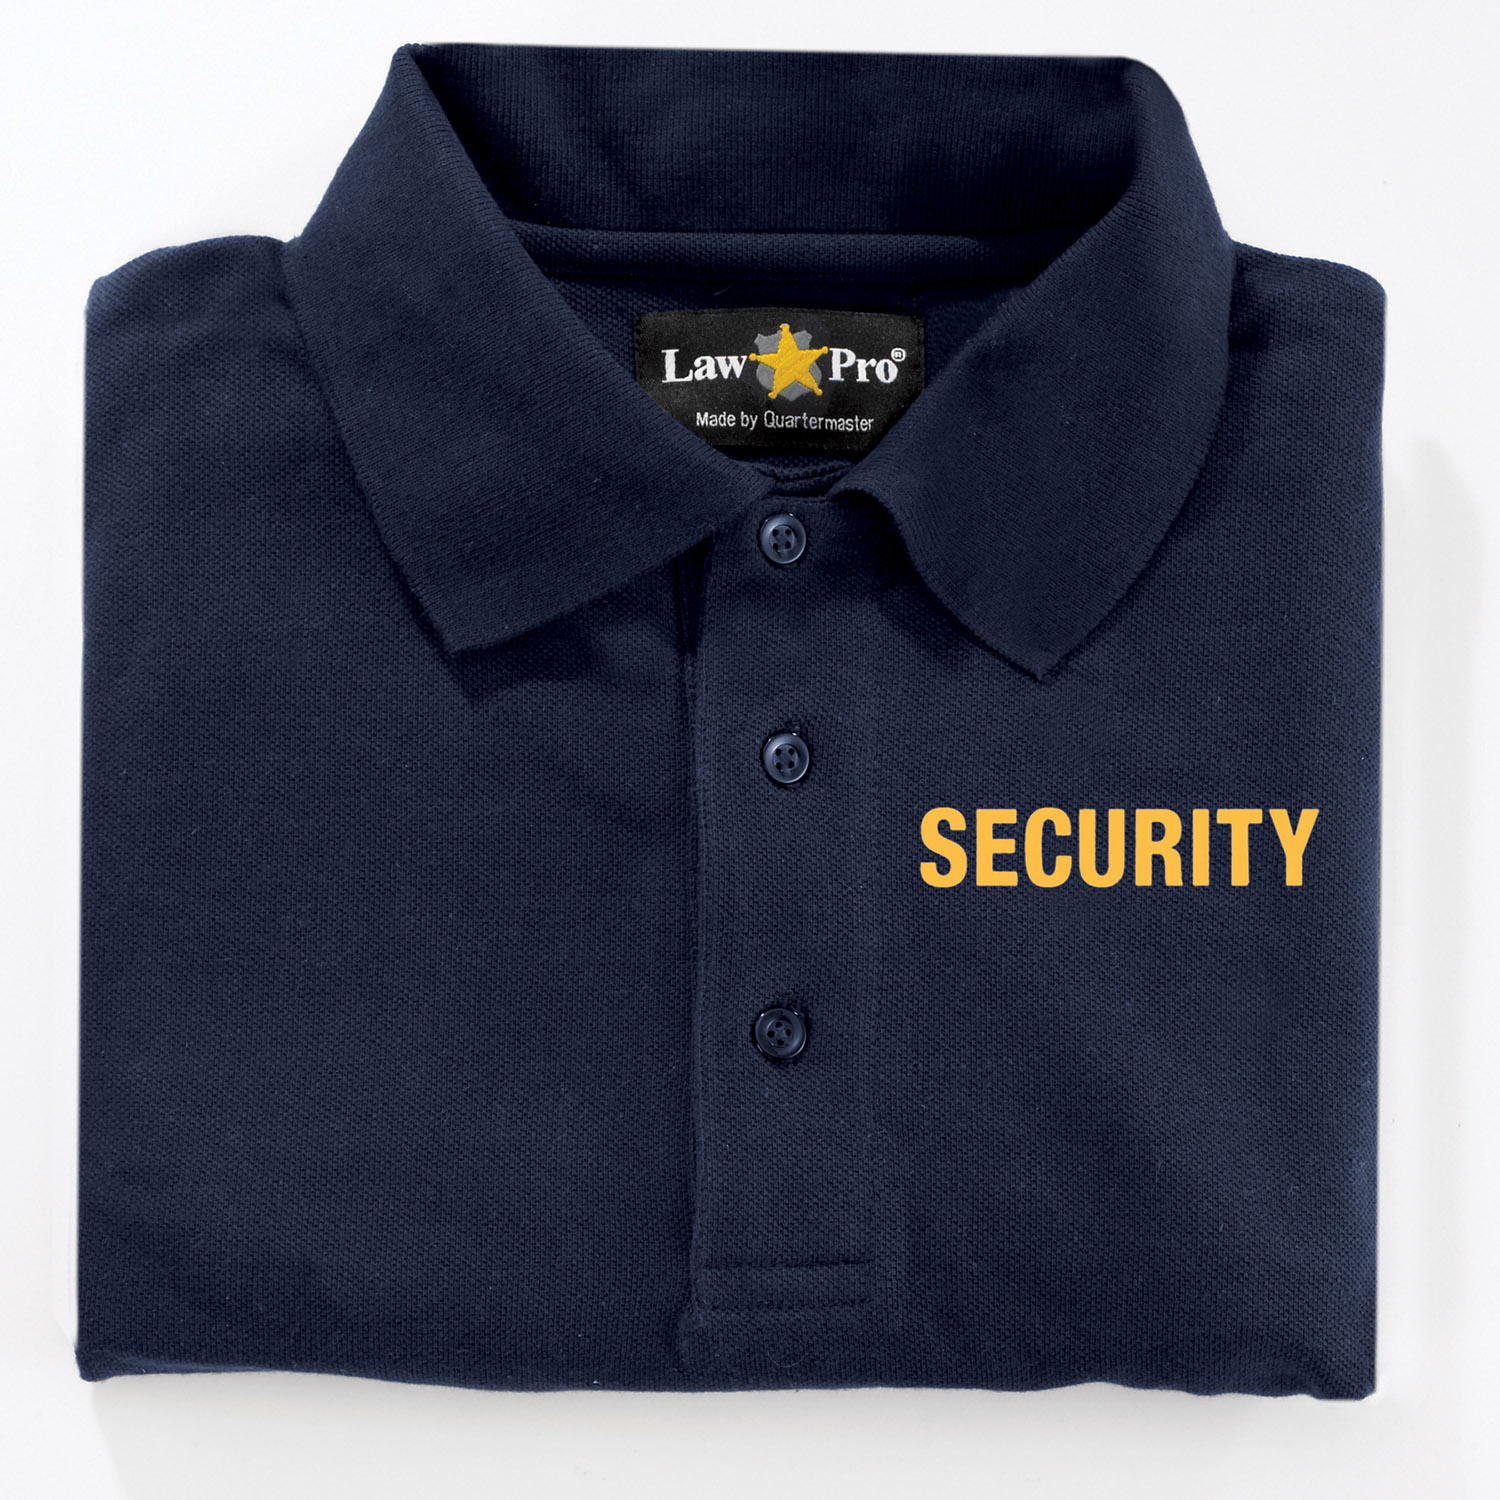 LawPro Security Silk Screened Women's Polo